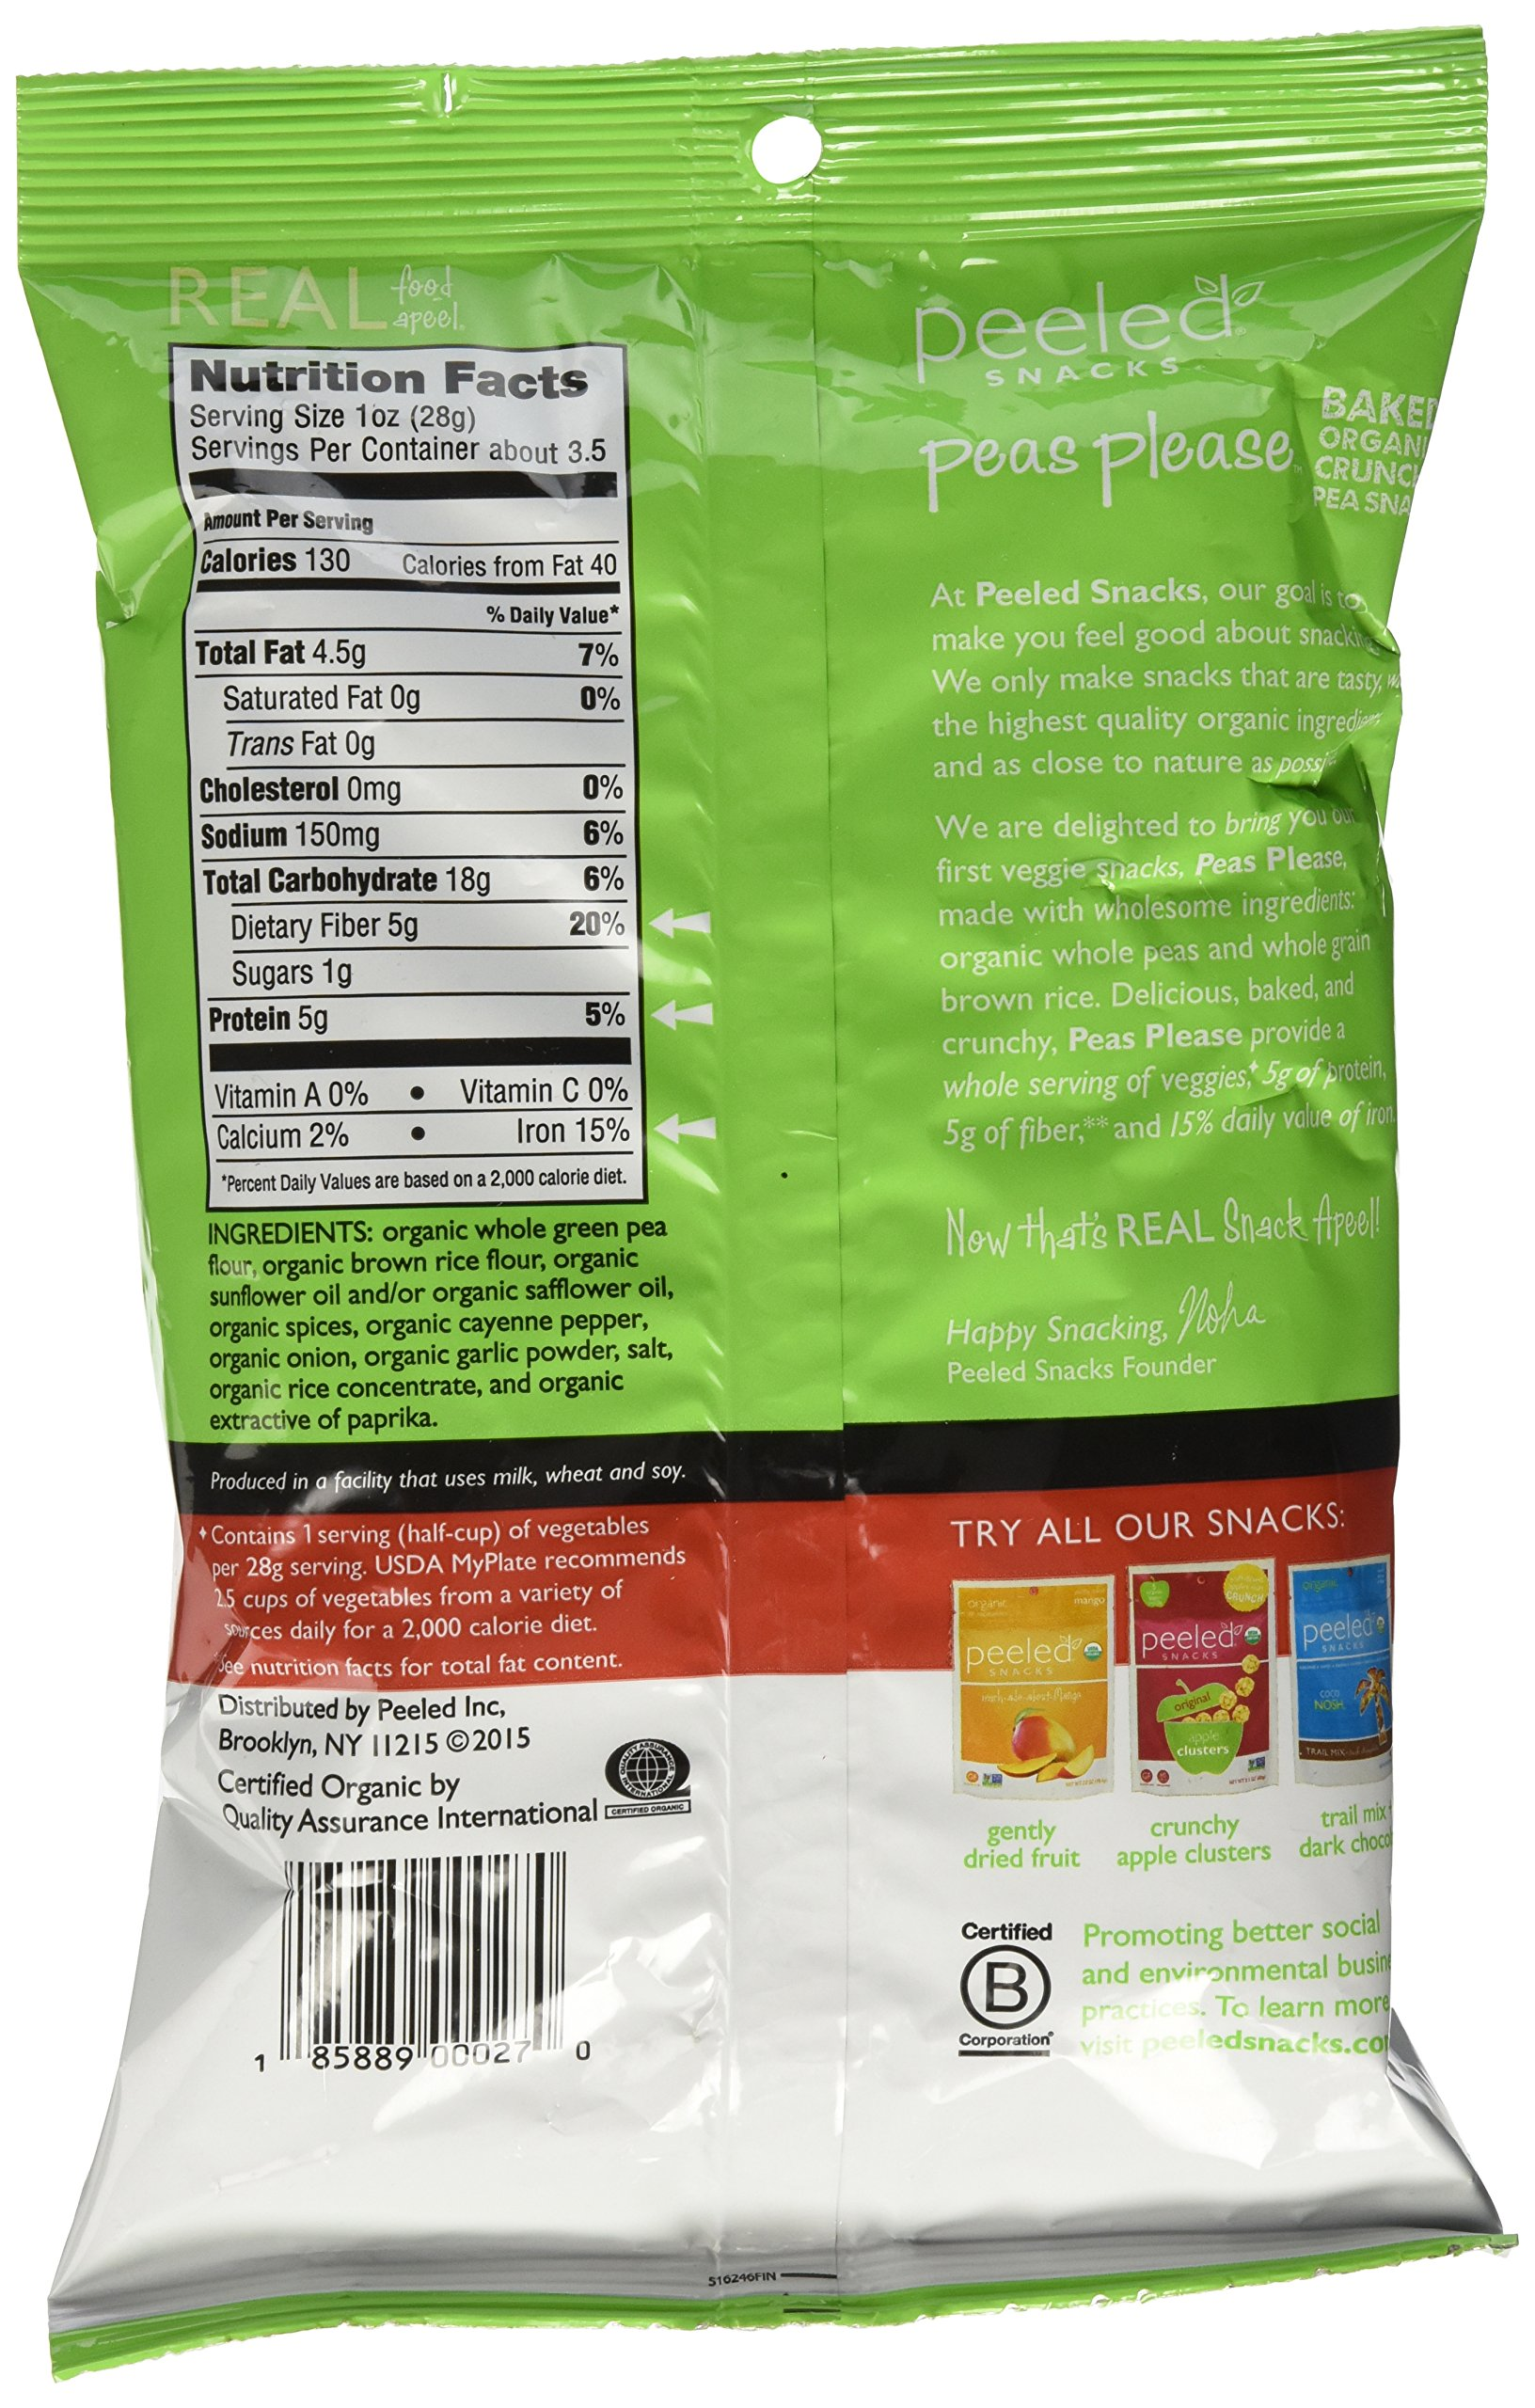 Peas Please Organic Gluten Free Baked Pea Snacks 3 Flavor Variety Bundle: (1) Peas Please Sea Salt, (1) Peas Please Garden Herb, and (1) Peas Please Southwest Spice, 3.3 Oz. Ea. (3 Bags Total)